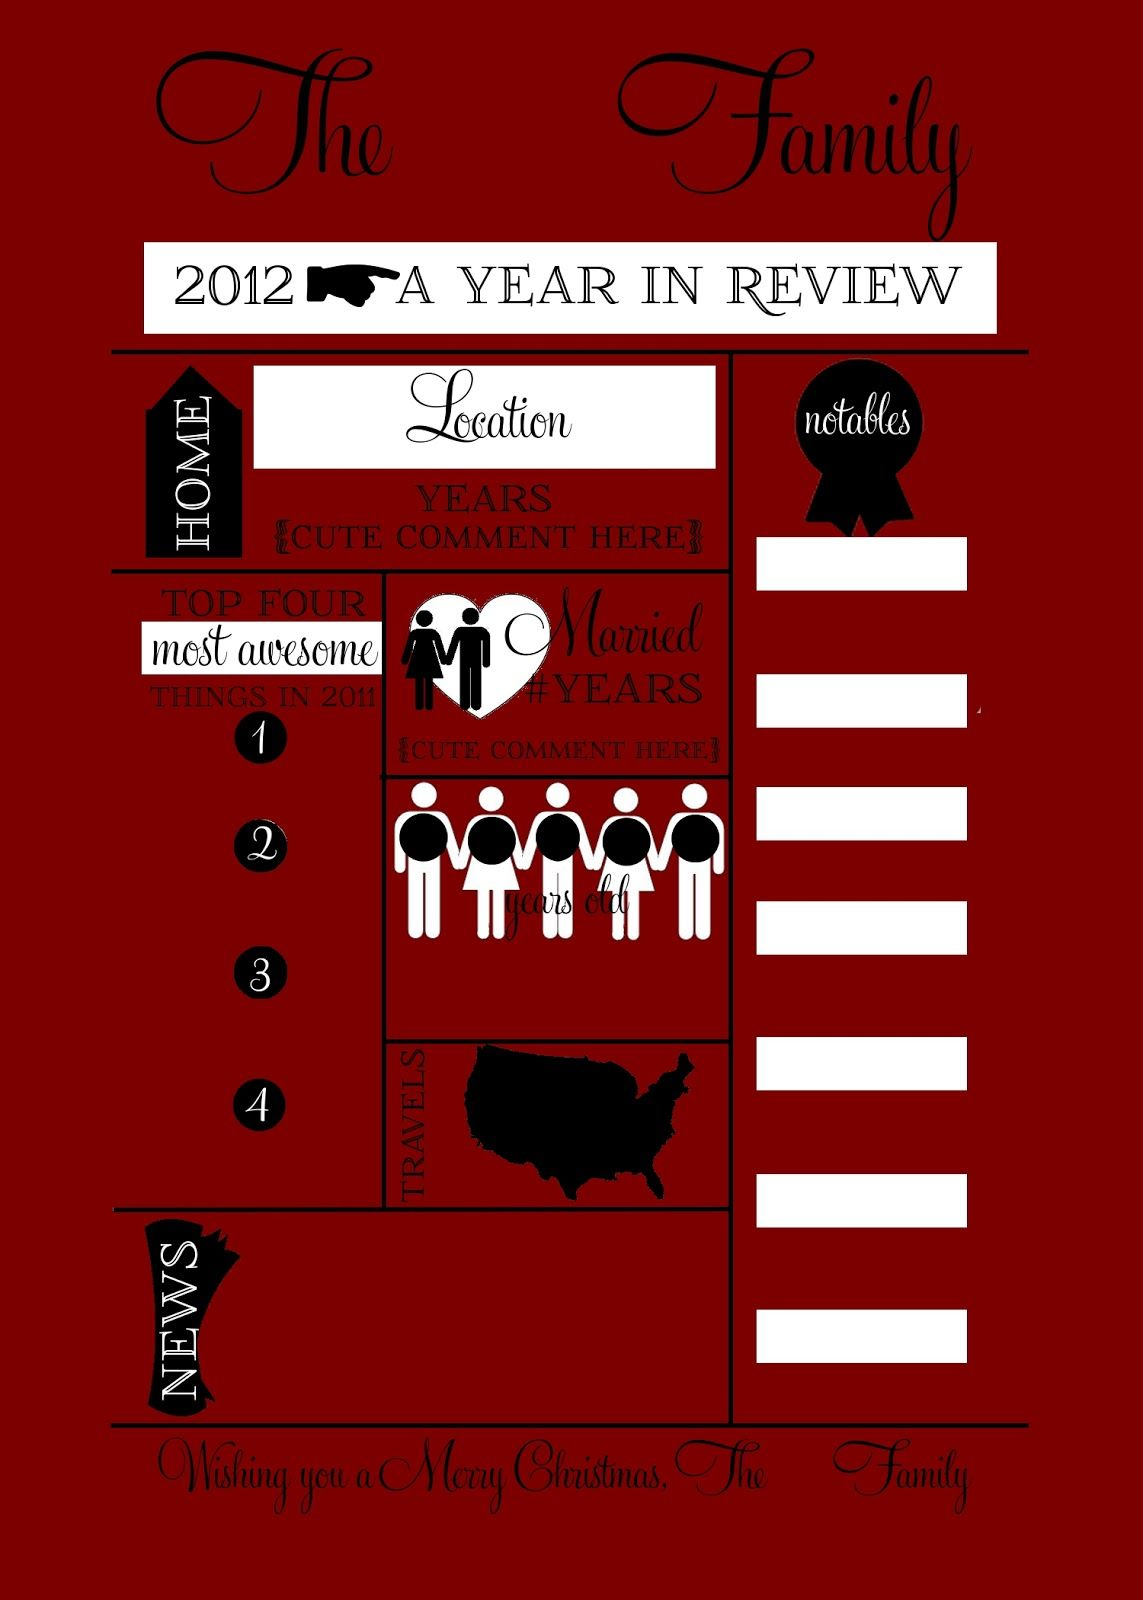 2012 Year in Review Infographic Cards. Template for a